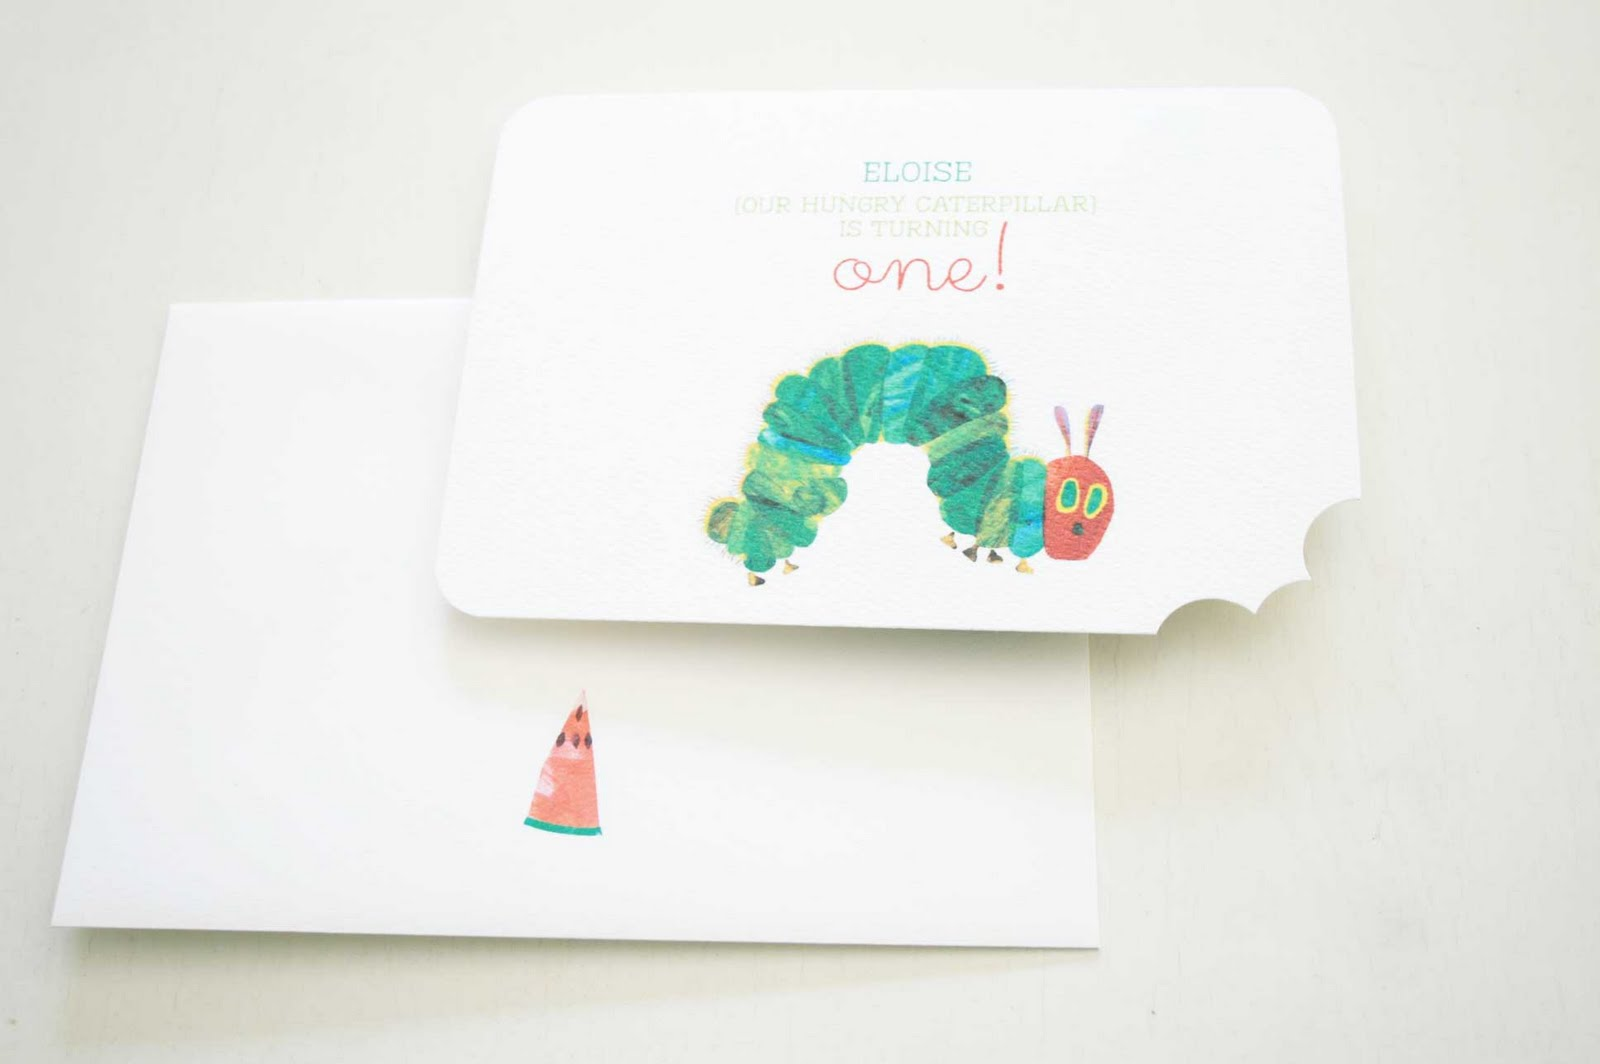 The Very Hungry Caterpillar Theme - Lifes Little Celebration